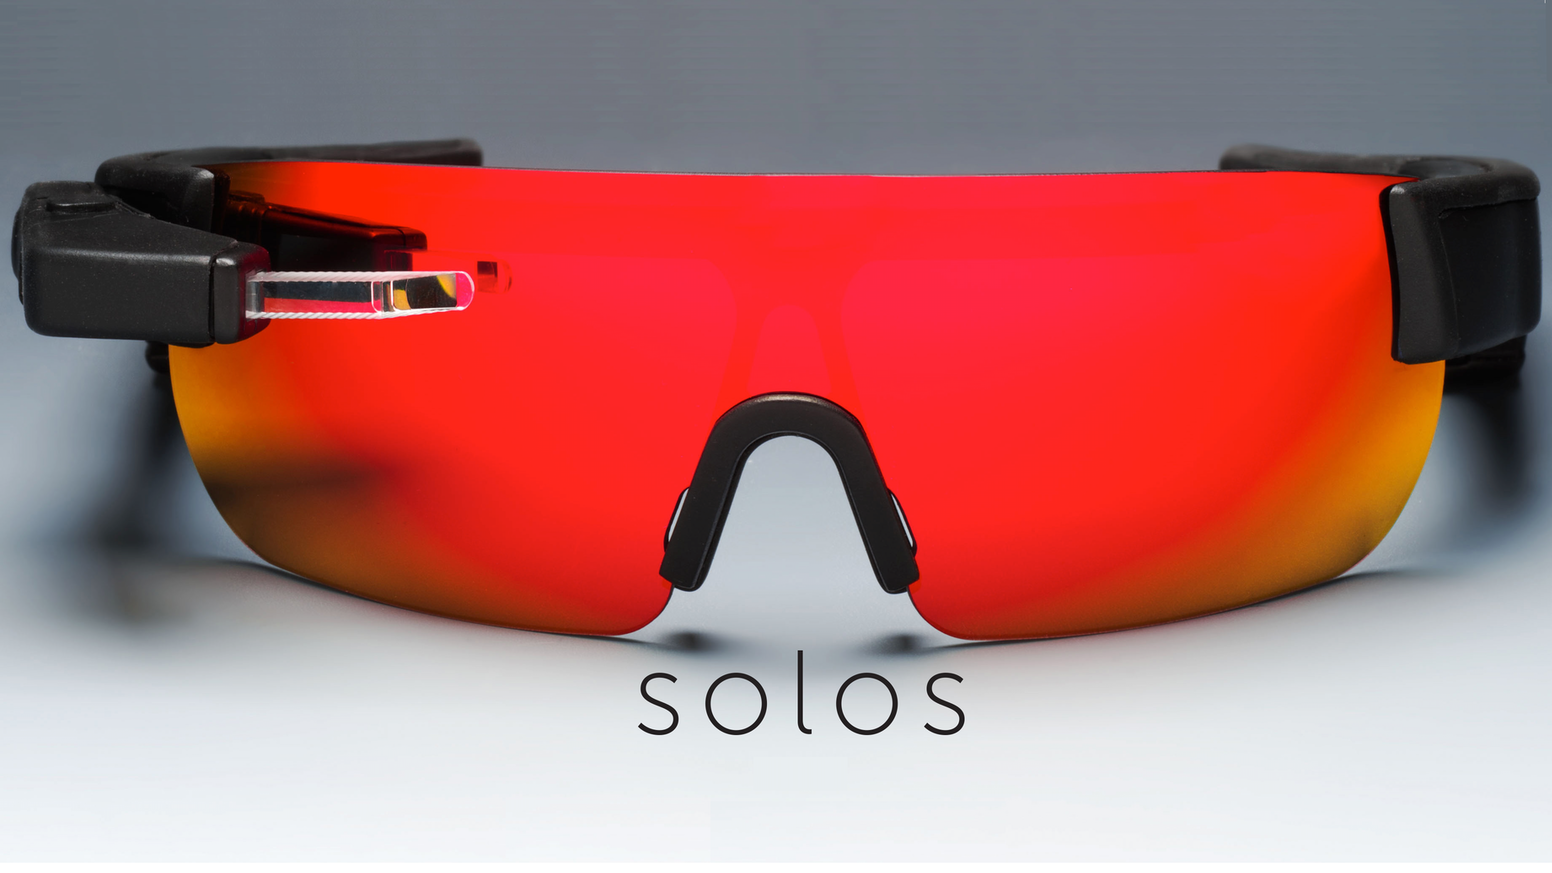 Heads up, hands free and fully immersed. Solos is the first and only Augmented Reality Bike Glasses developed with USA Cycling!